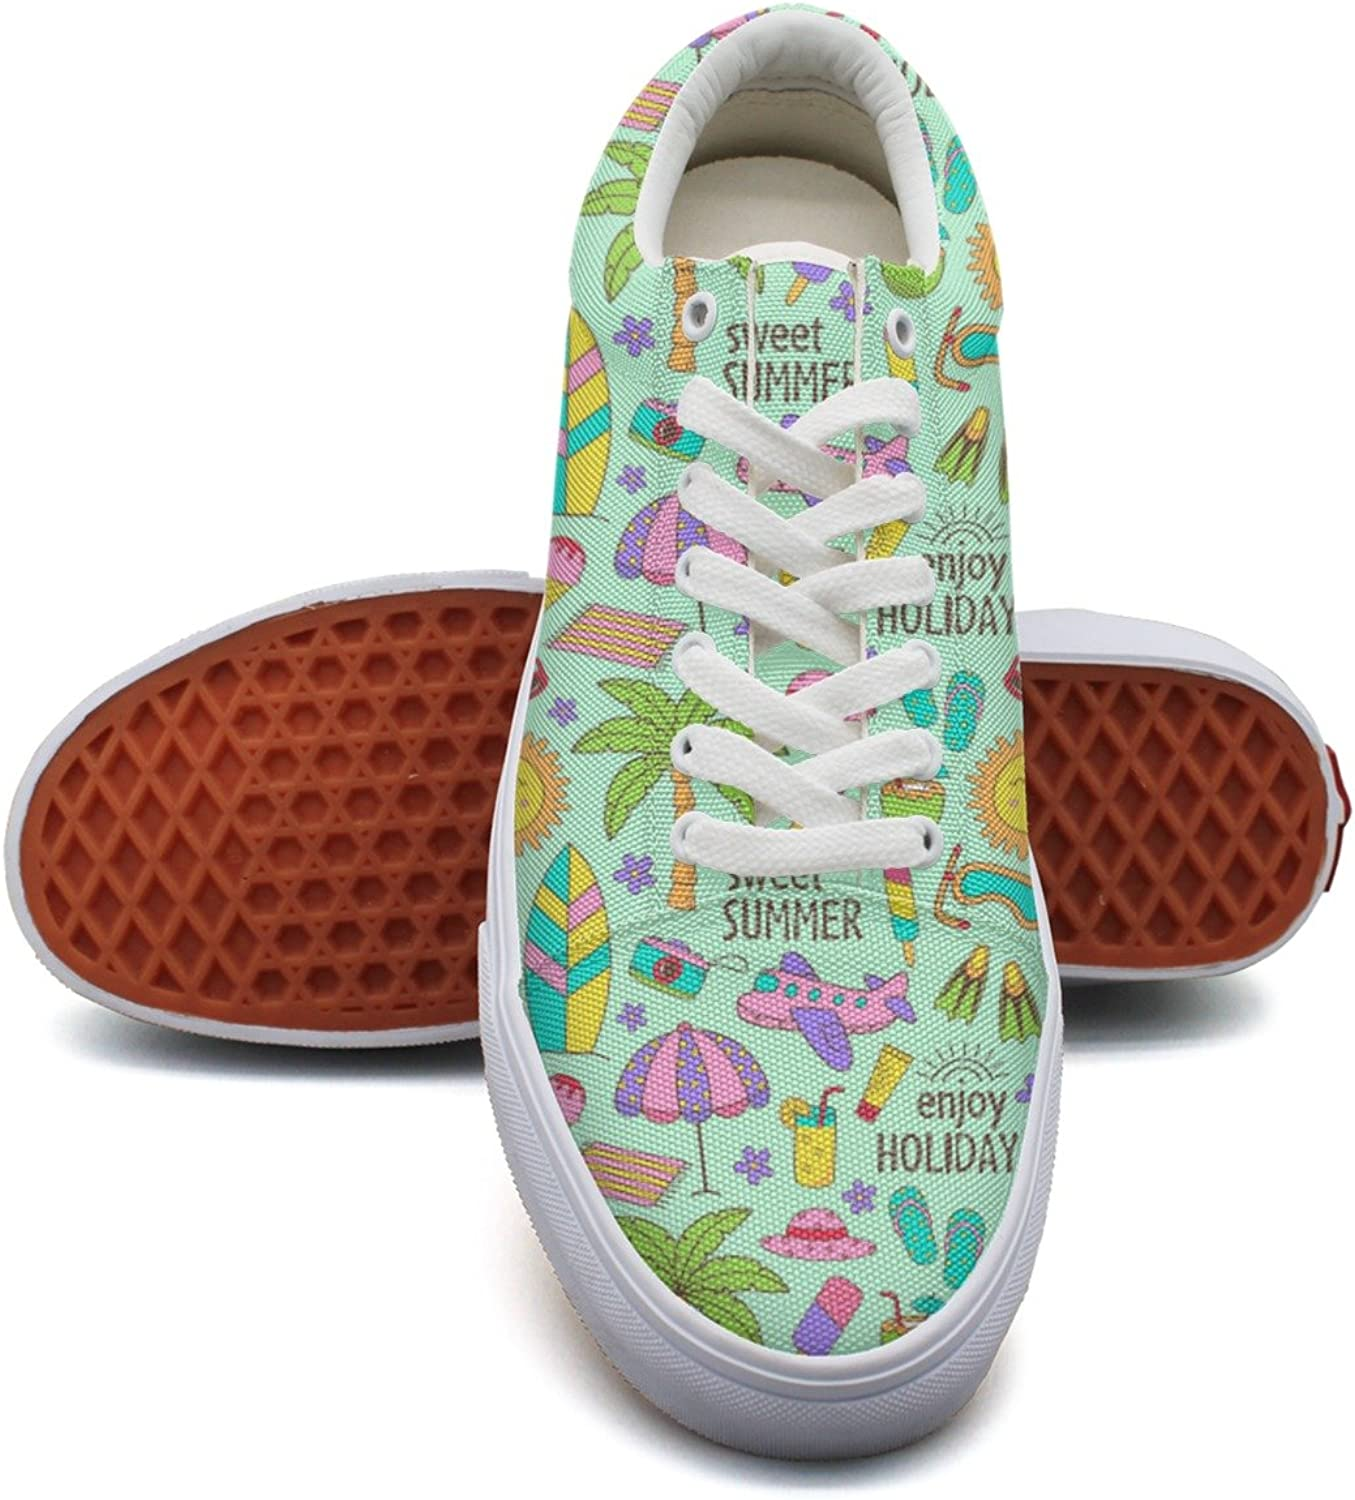 Feenfling Sweet Summer Go to The Beach Womens Navy Canvas Boat shoes Low Top Neon Tennis shoes for Women's